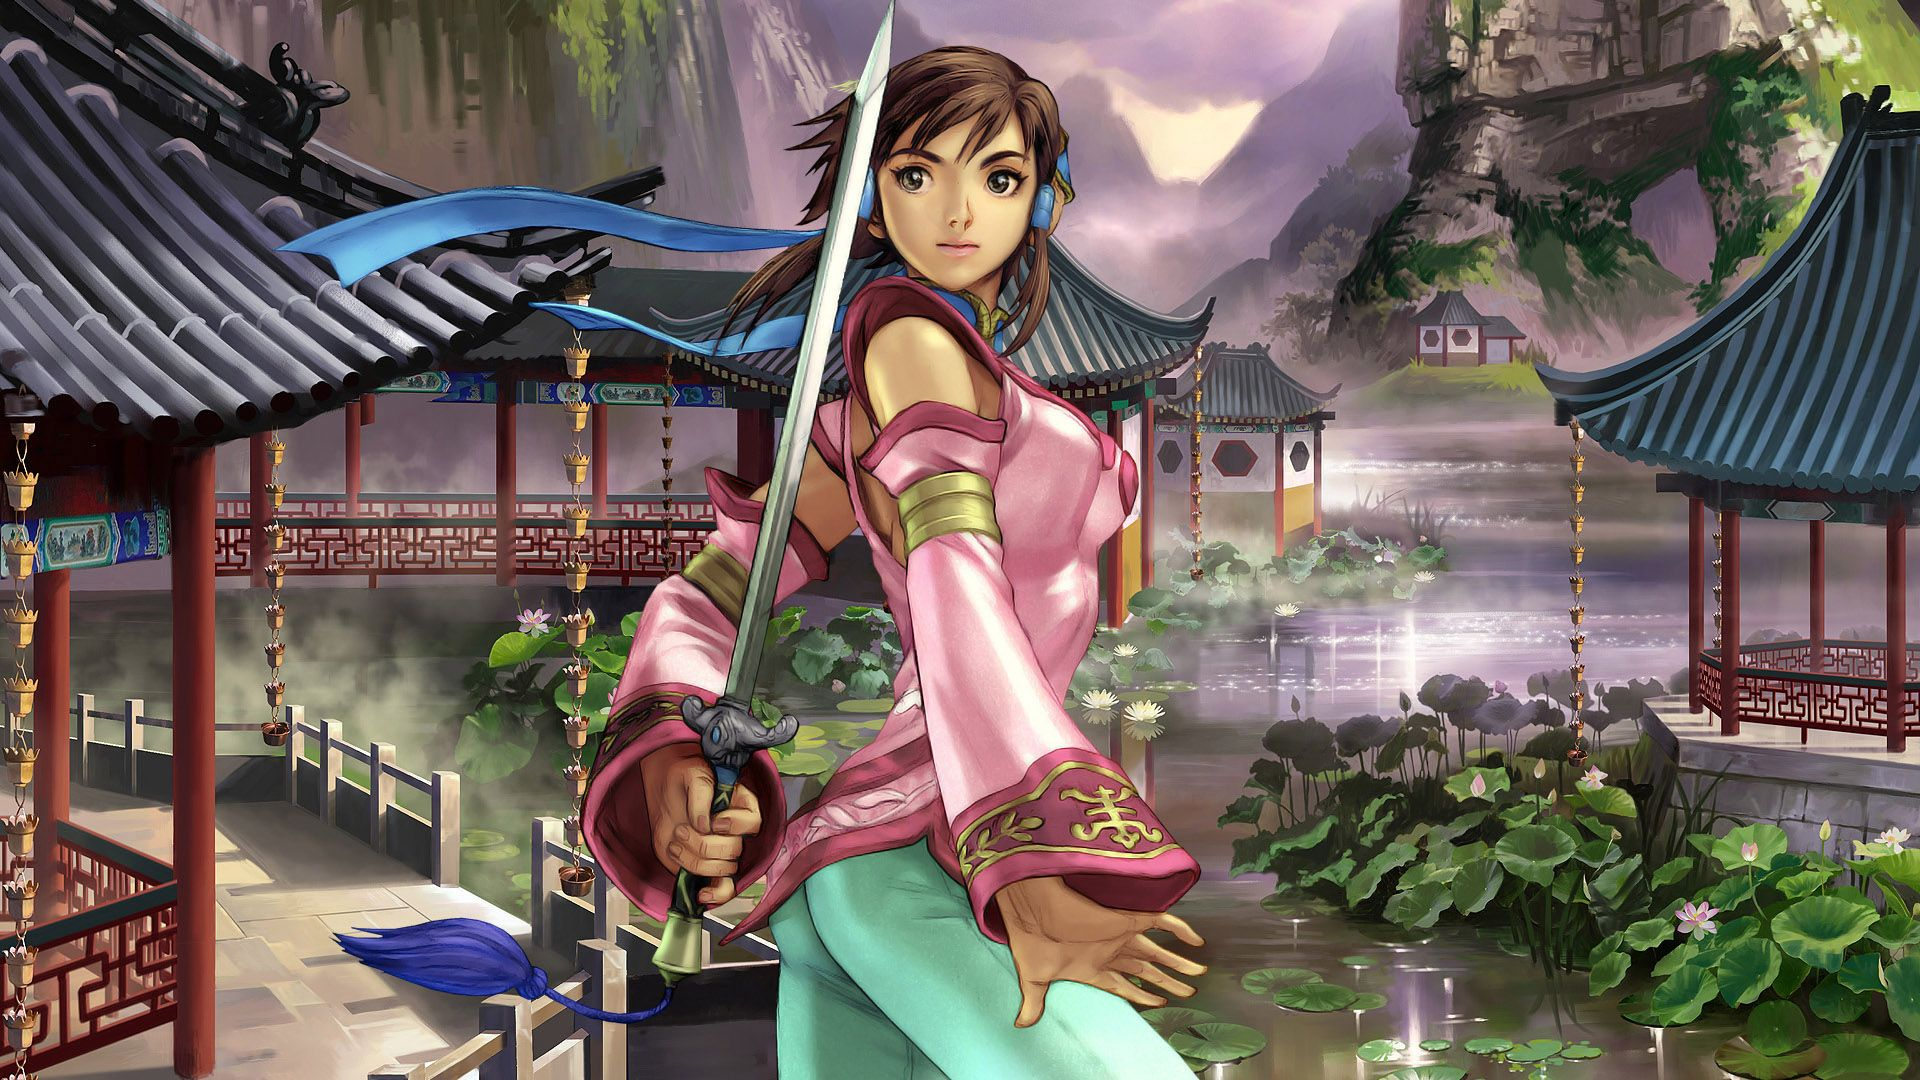 Xianghua From Soulcalibur In The Ga Hq Video Game Character Db